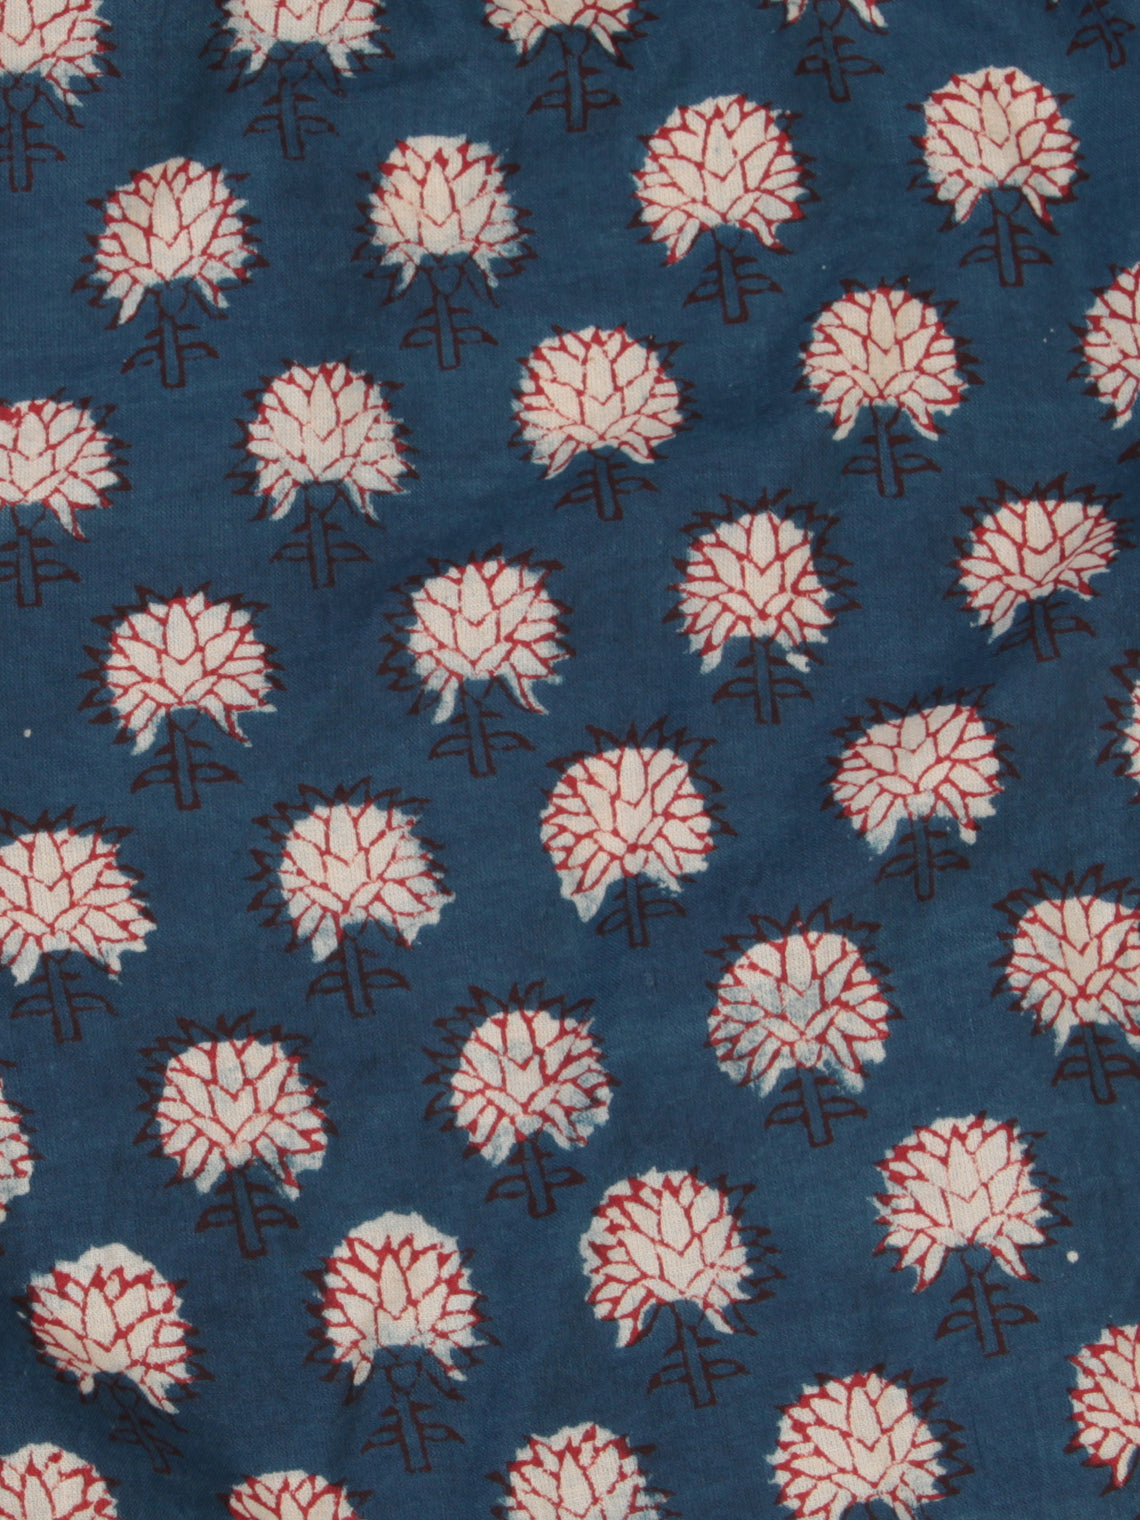 Indigo OffWhite Red Hand Block Printed Cotton Fabric Per Meter - F001F2474